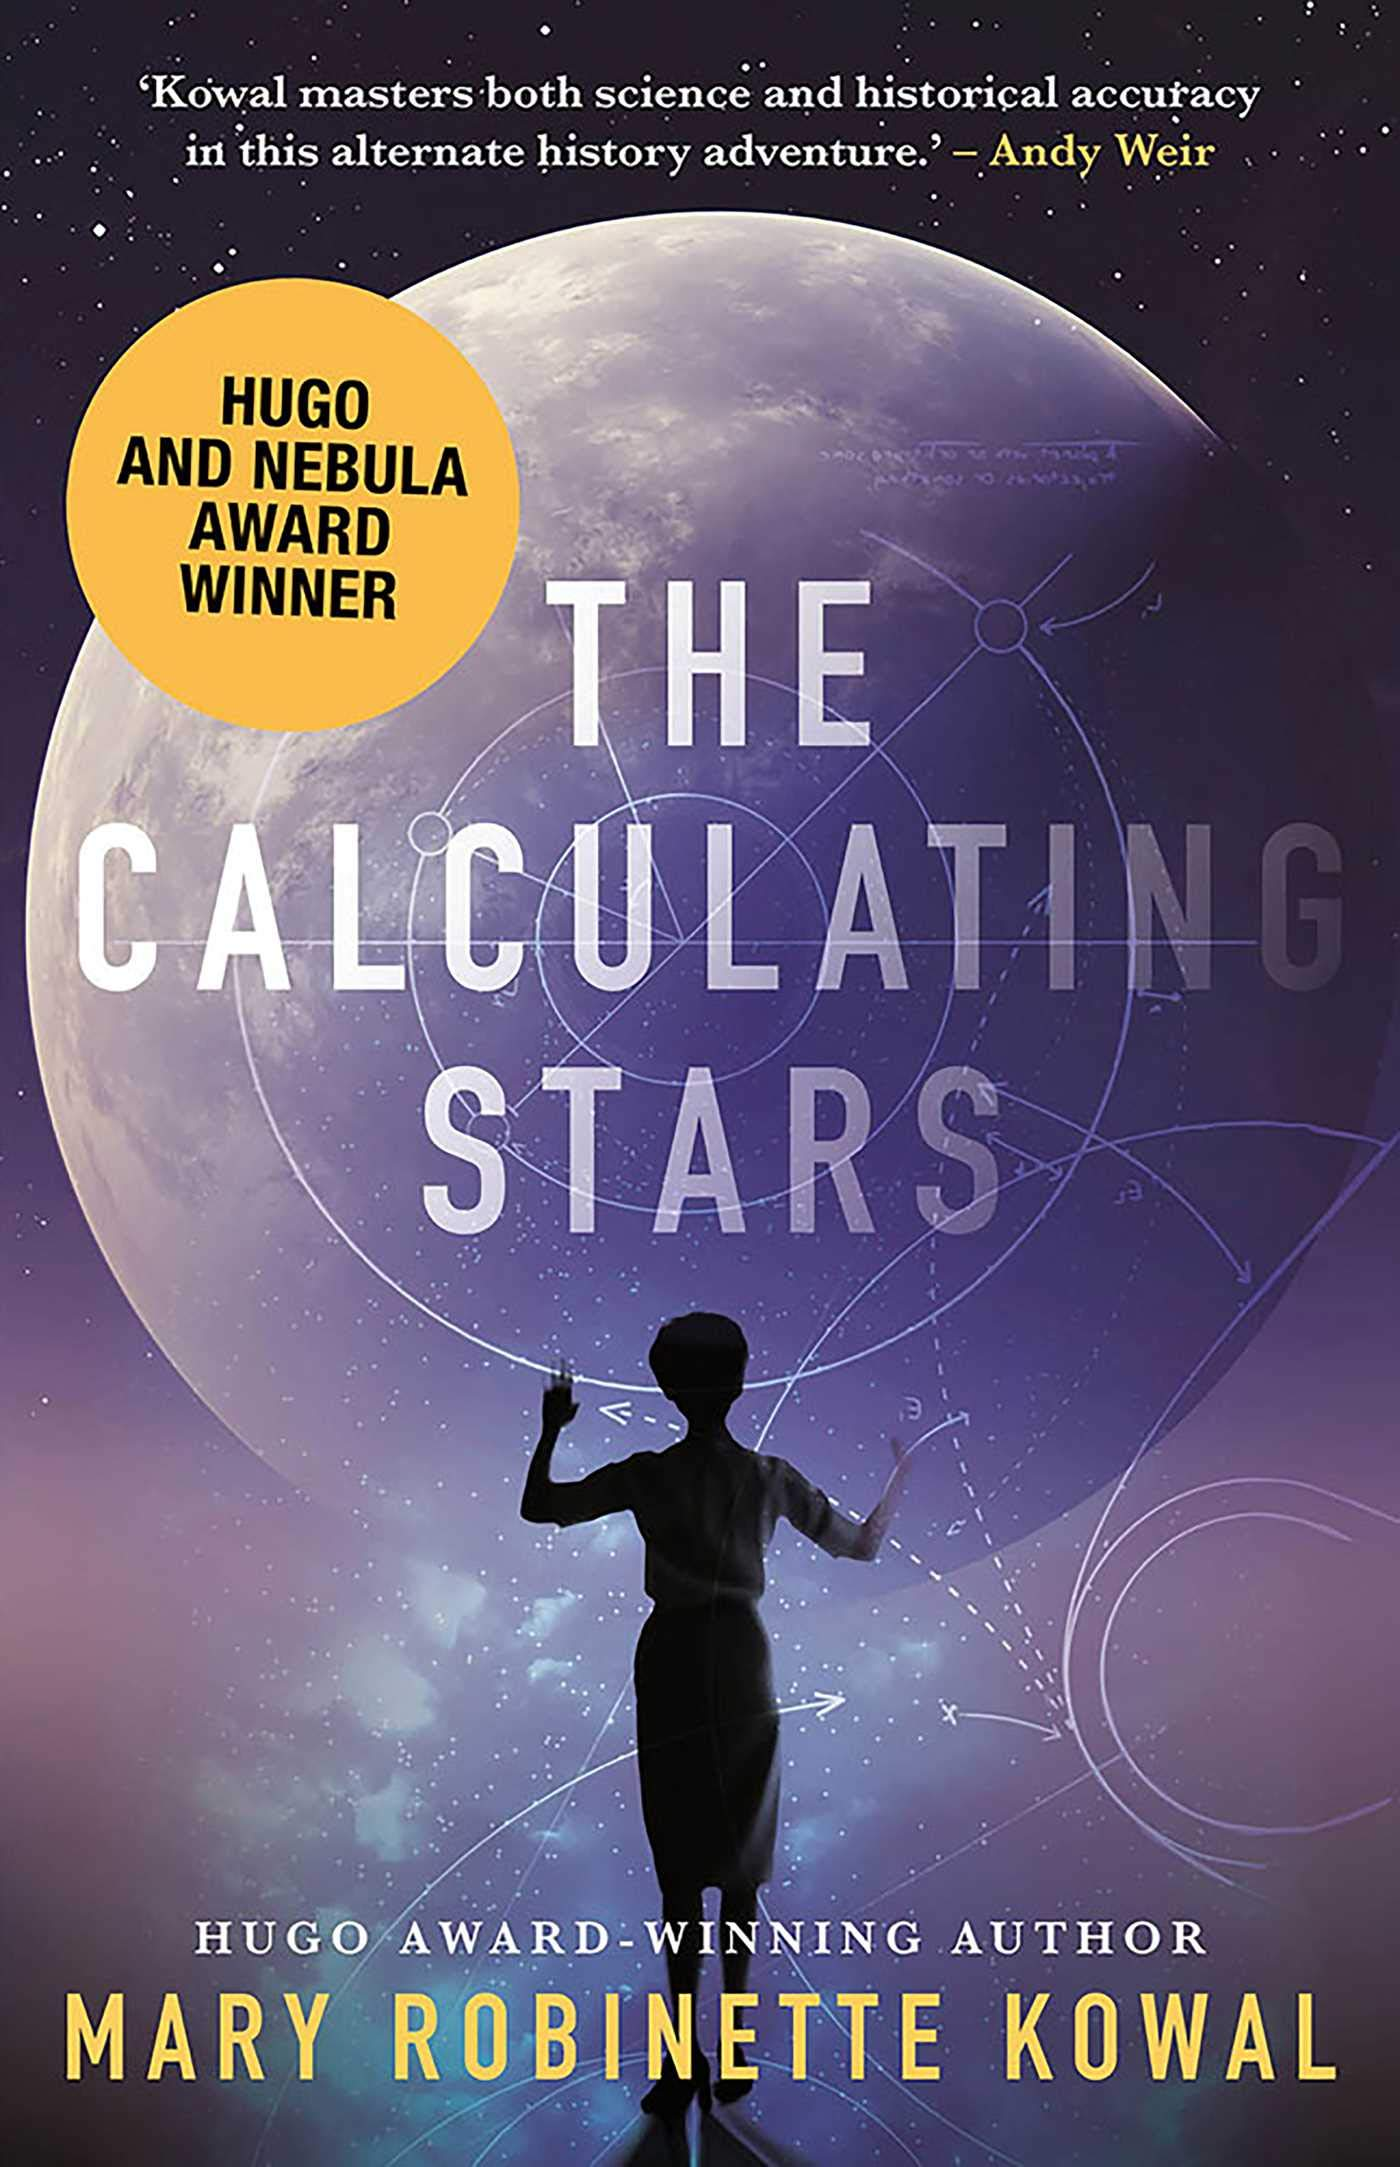 « The Calculating Stars », de Mary Robinette Kowal